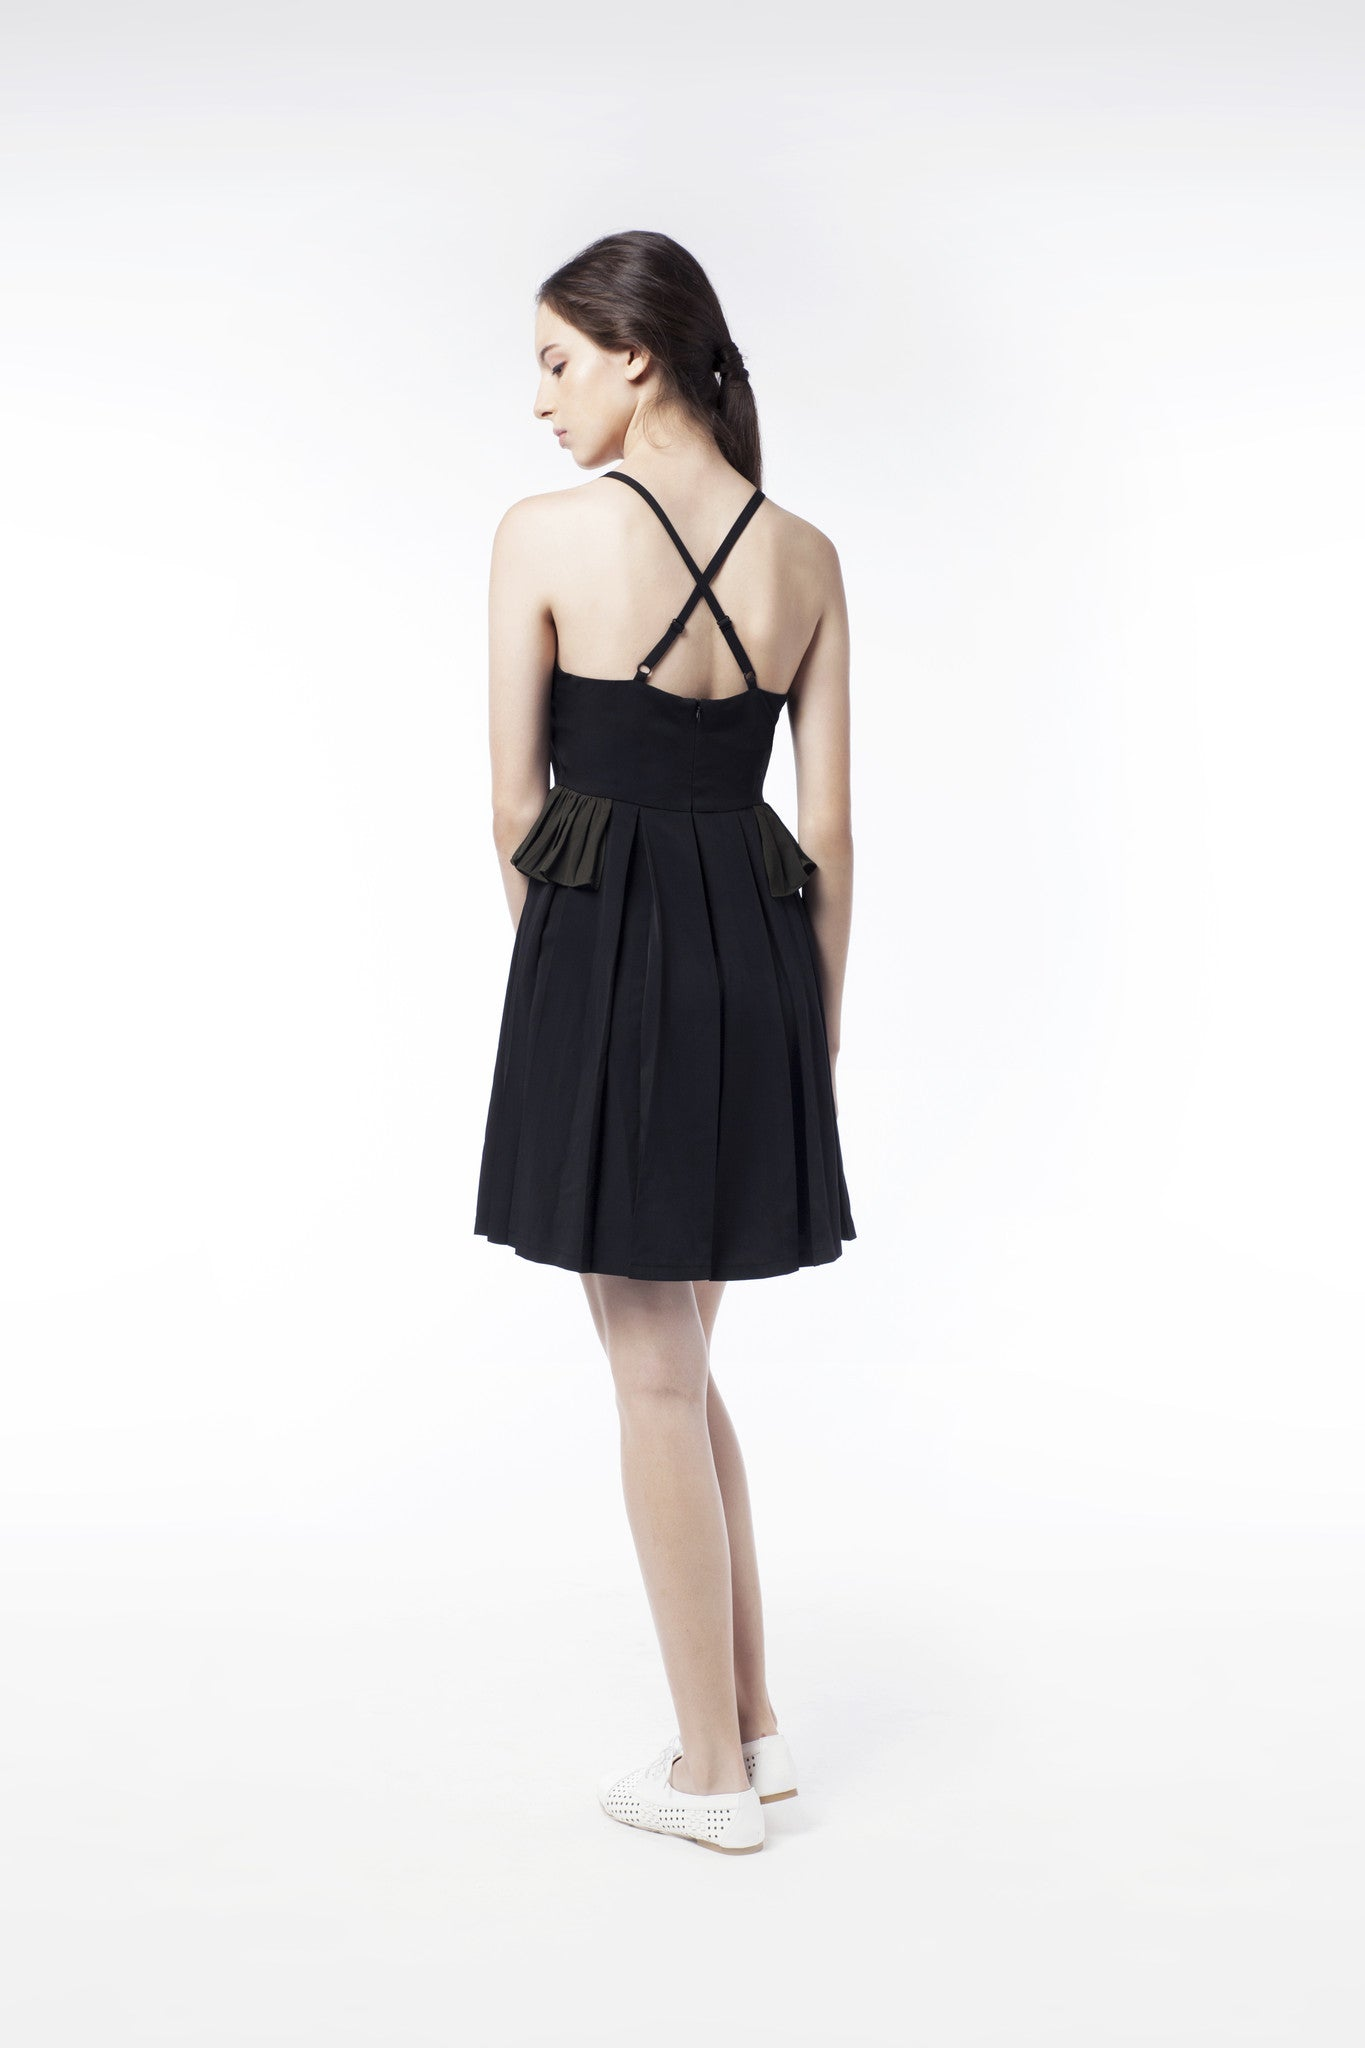 Little Black Dress With Frill - GlanceZ   - 3